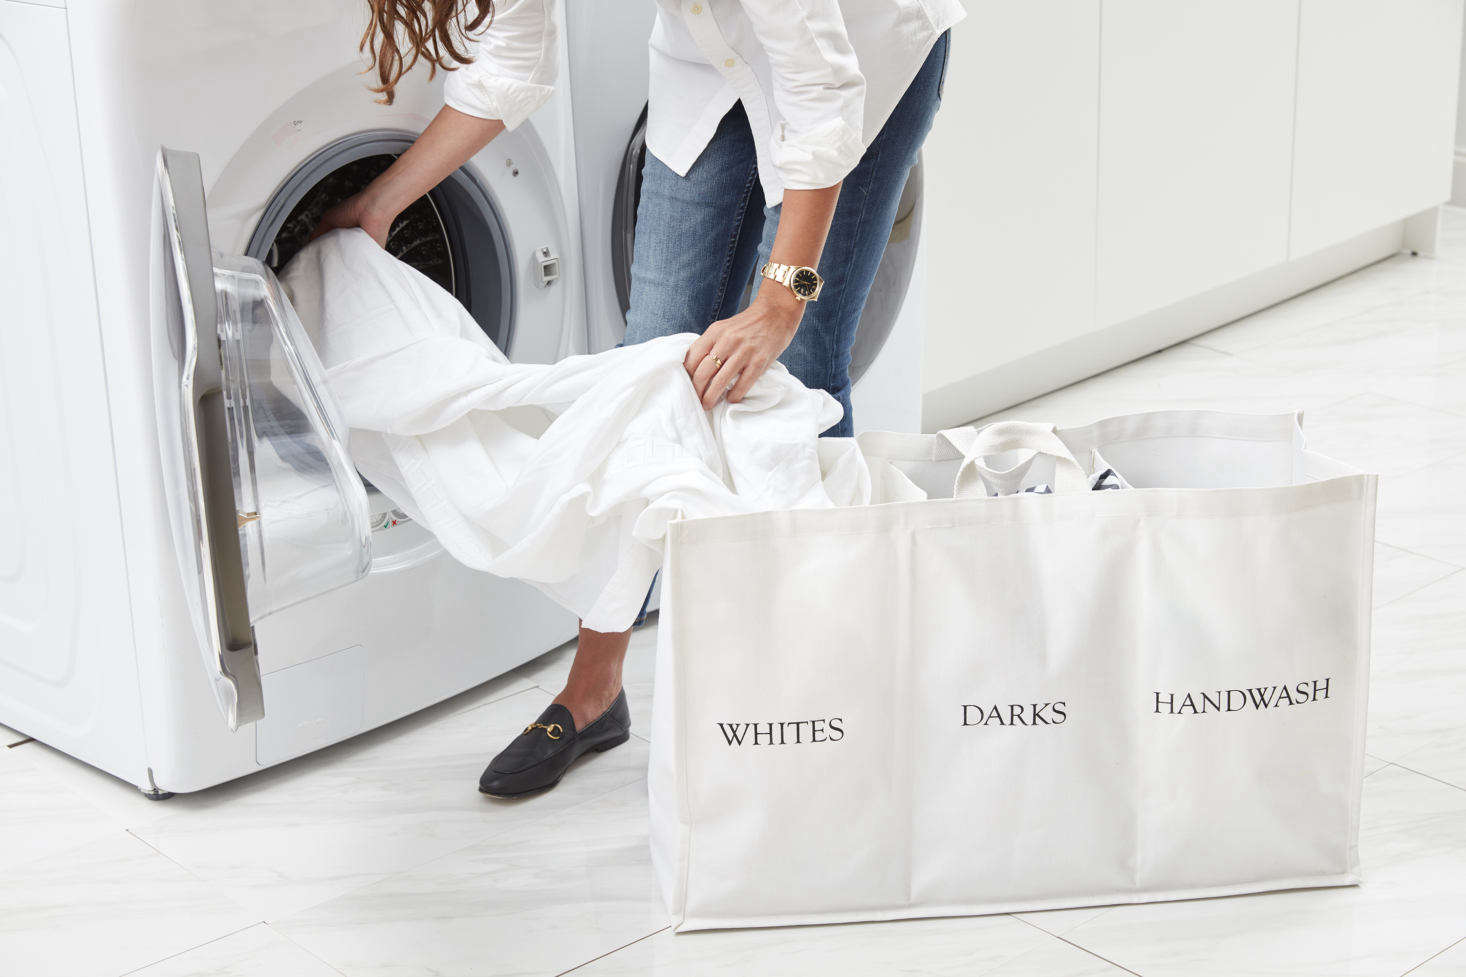 dbc8658991fc New & Noteworthy: The Laundress Goes Beyond the Laundry Room with a ...